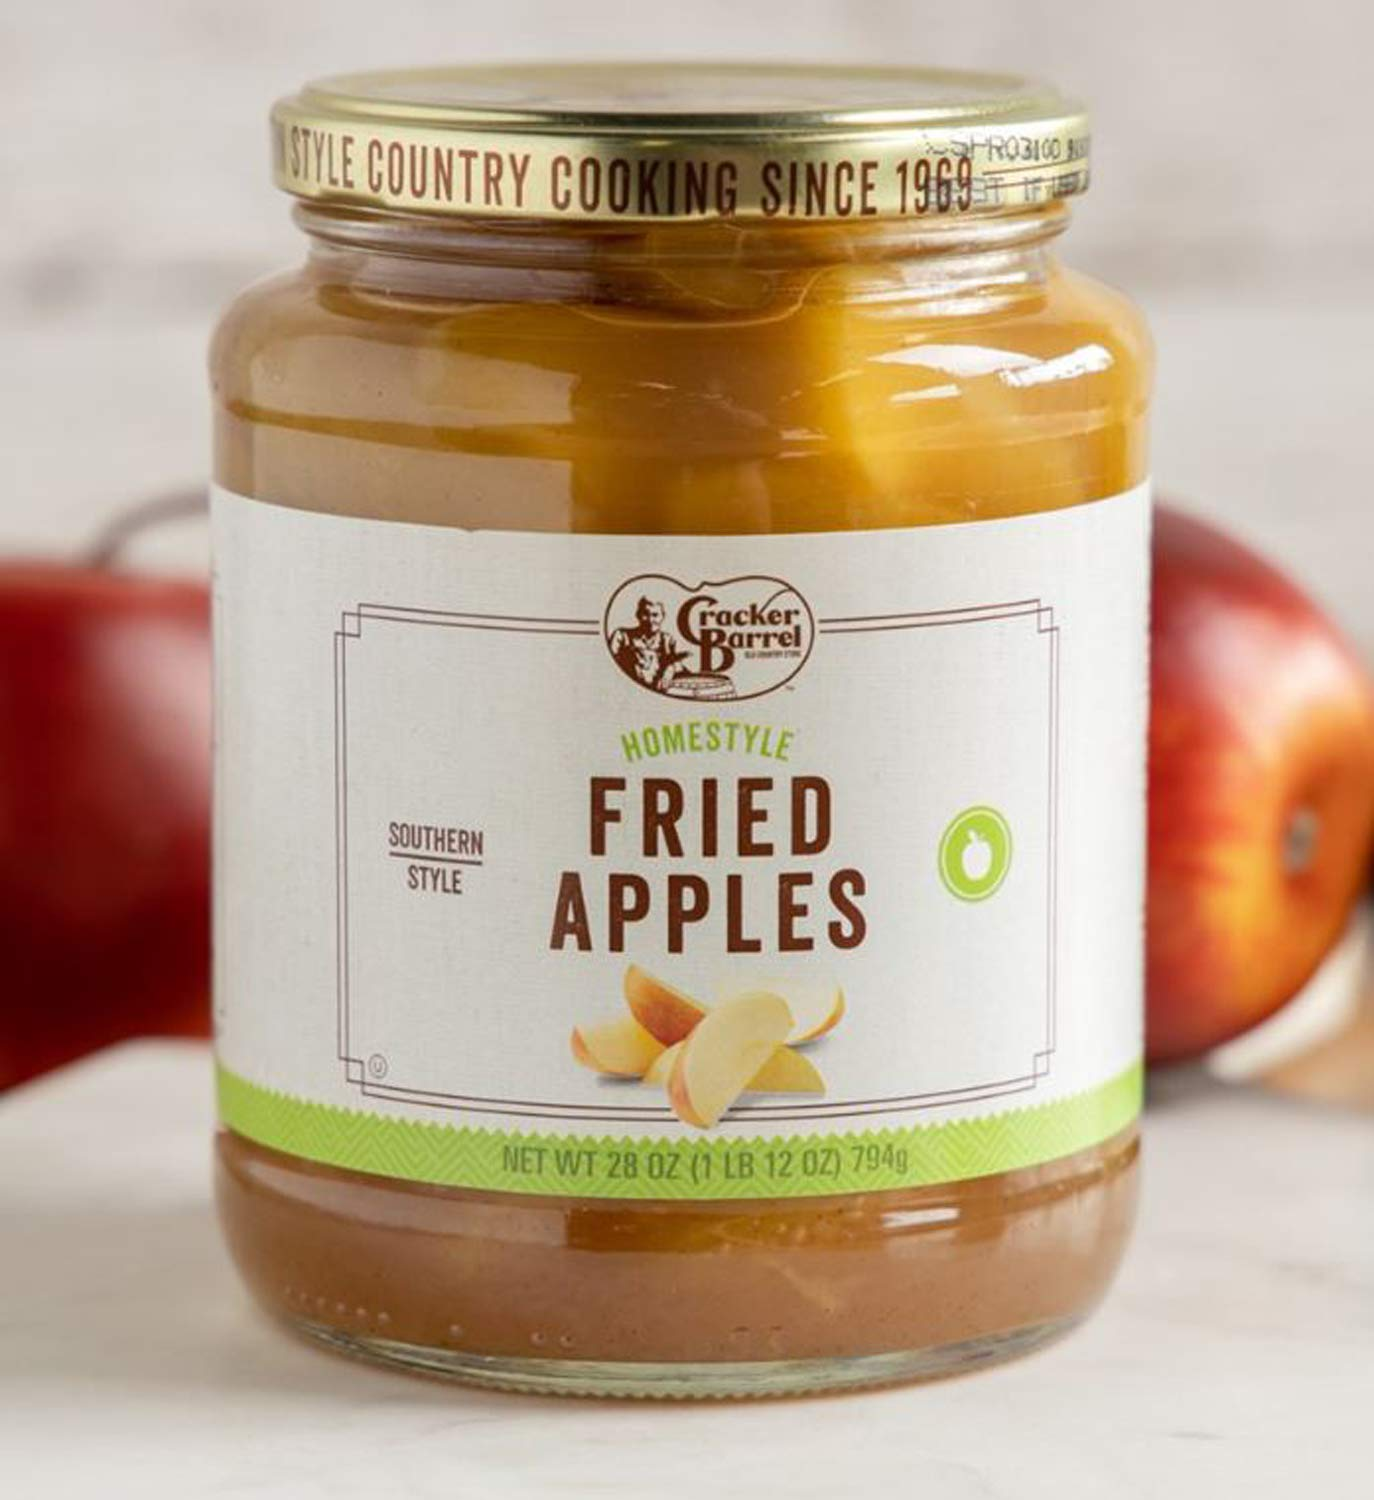 Cracker Barrel Fried Apples Jar 28 Oz! Homestyle Fried Apples! Made with Fresh Apples! Can Be Used In Delicious Homemade Apple Crisp! Perfect For Breakfast Or Lunch Side Dish!